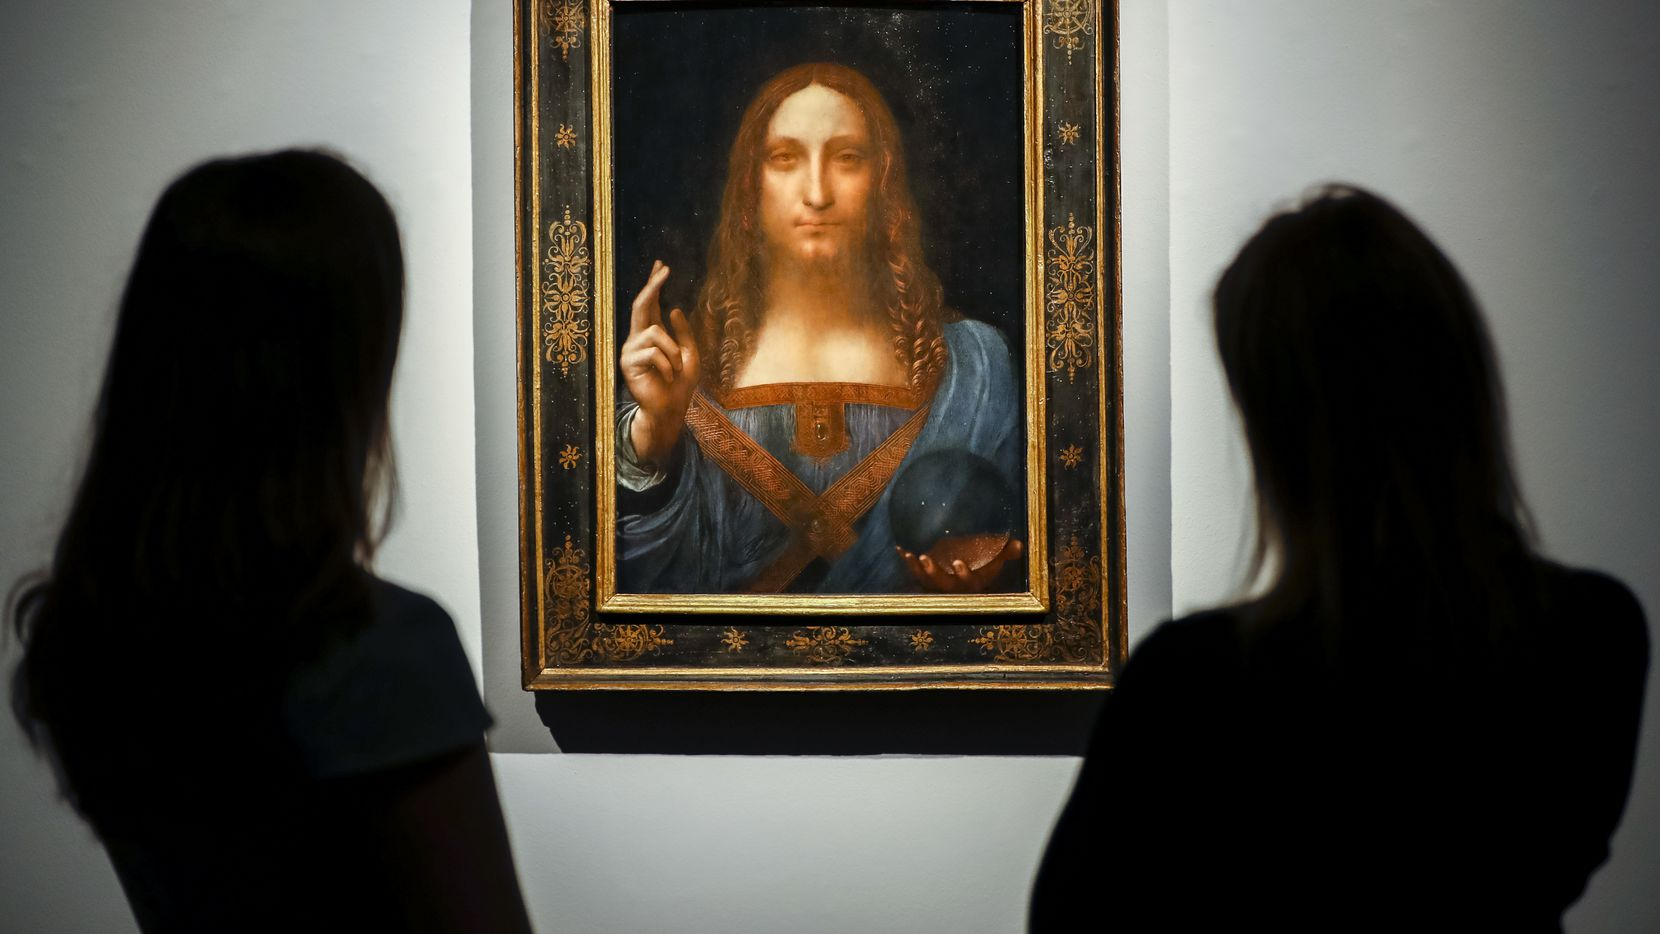 Christie's employees pose in front of Salvator Mundi by Leonardo da Vinci at Christie's auction house in London on Oct. 22, 2017 ahead of its sale at Christie's New York on Nov. 15, 2017.